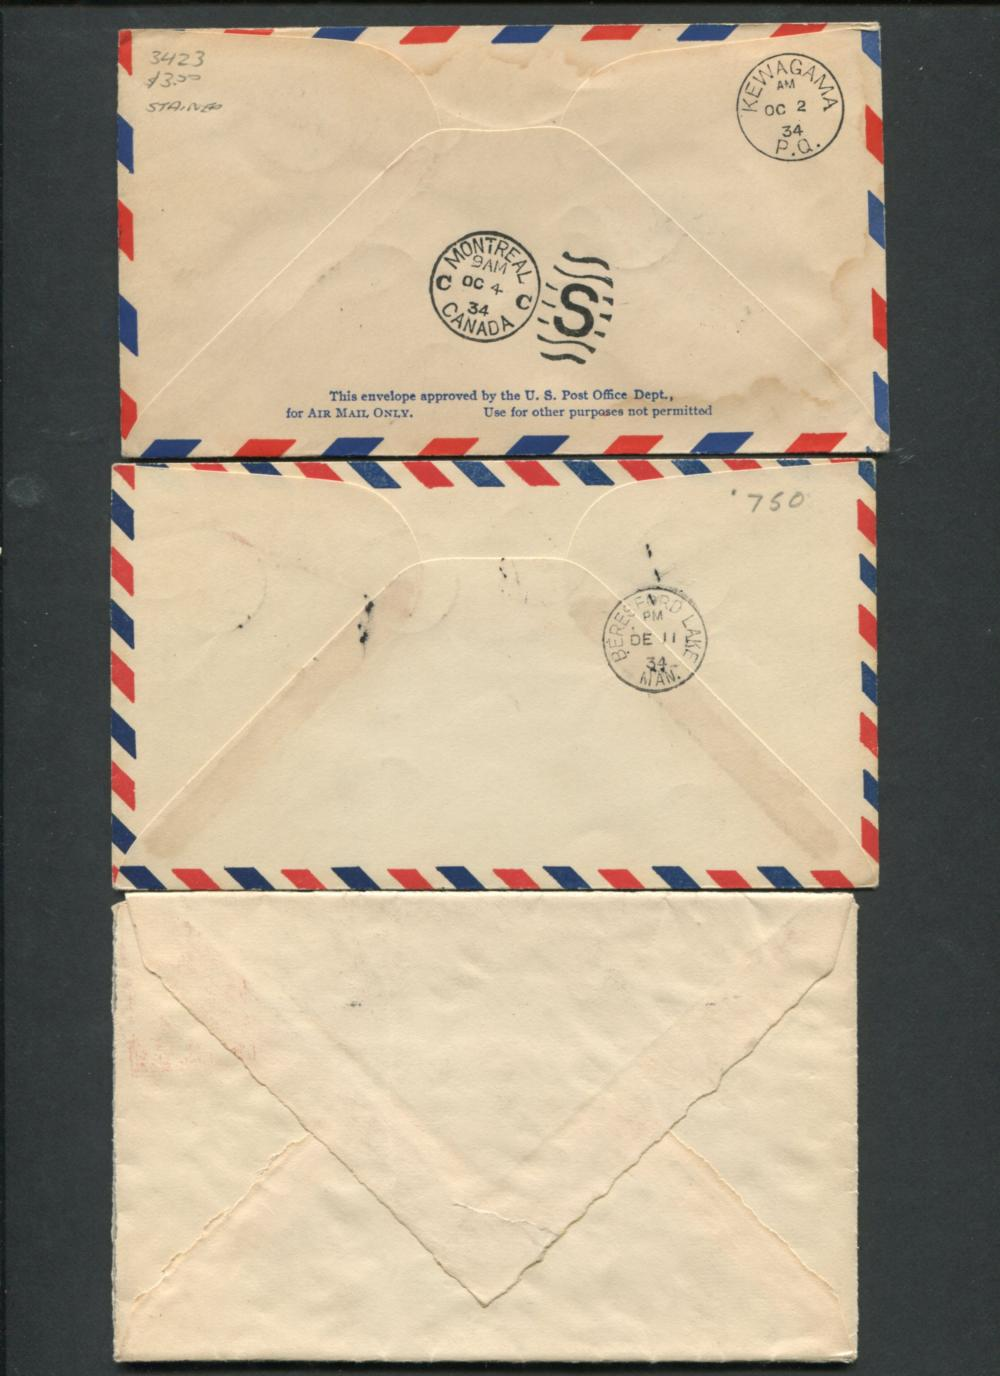 Canada First Flight Stamp Covers 1